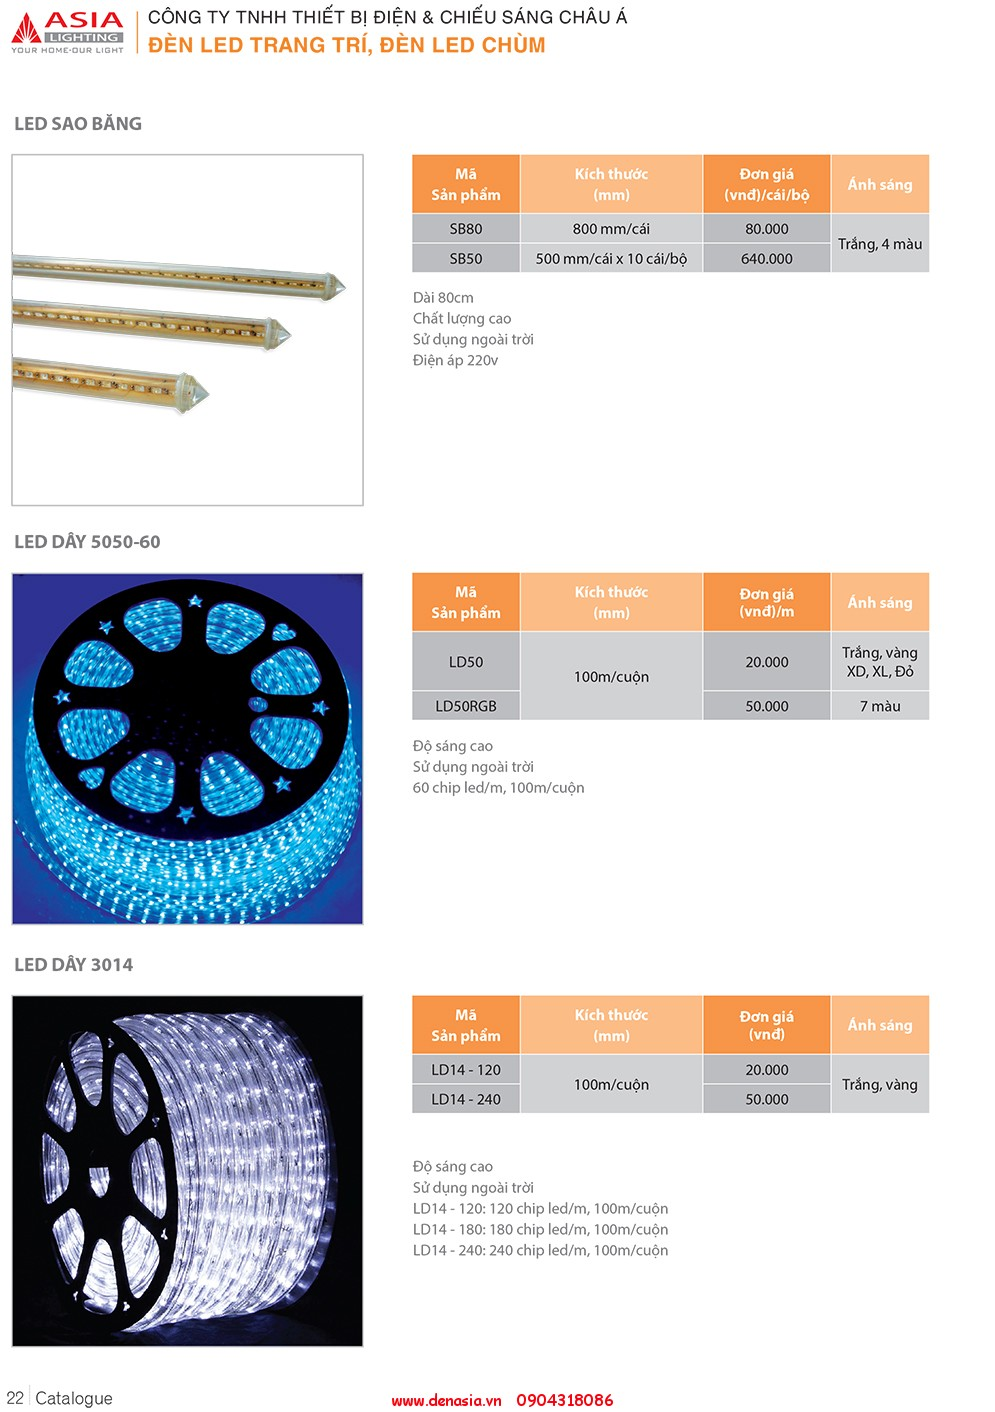 CATALOG - ĐÈN LED ASIA-22